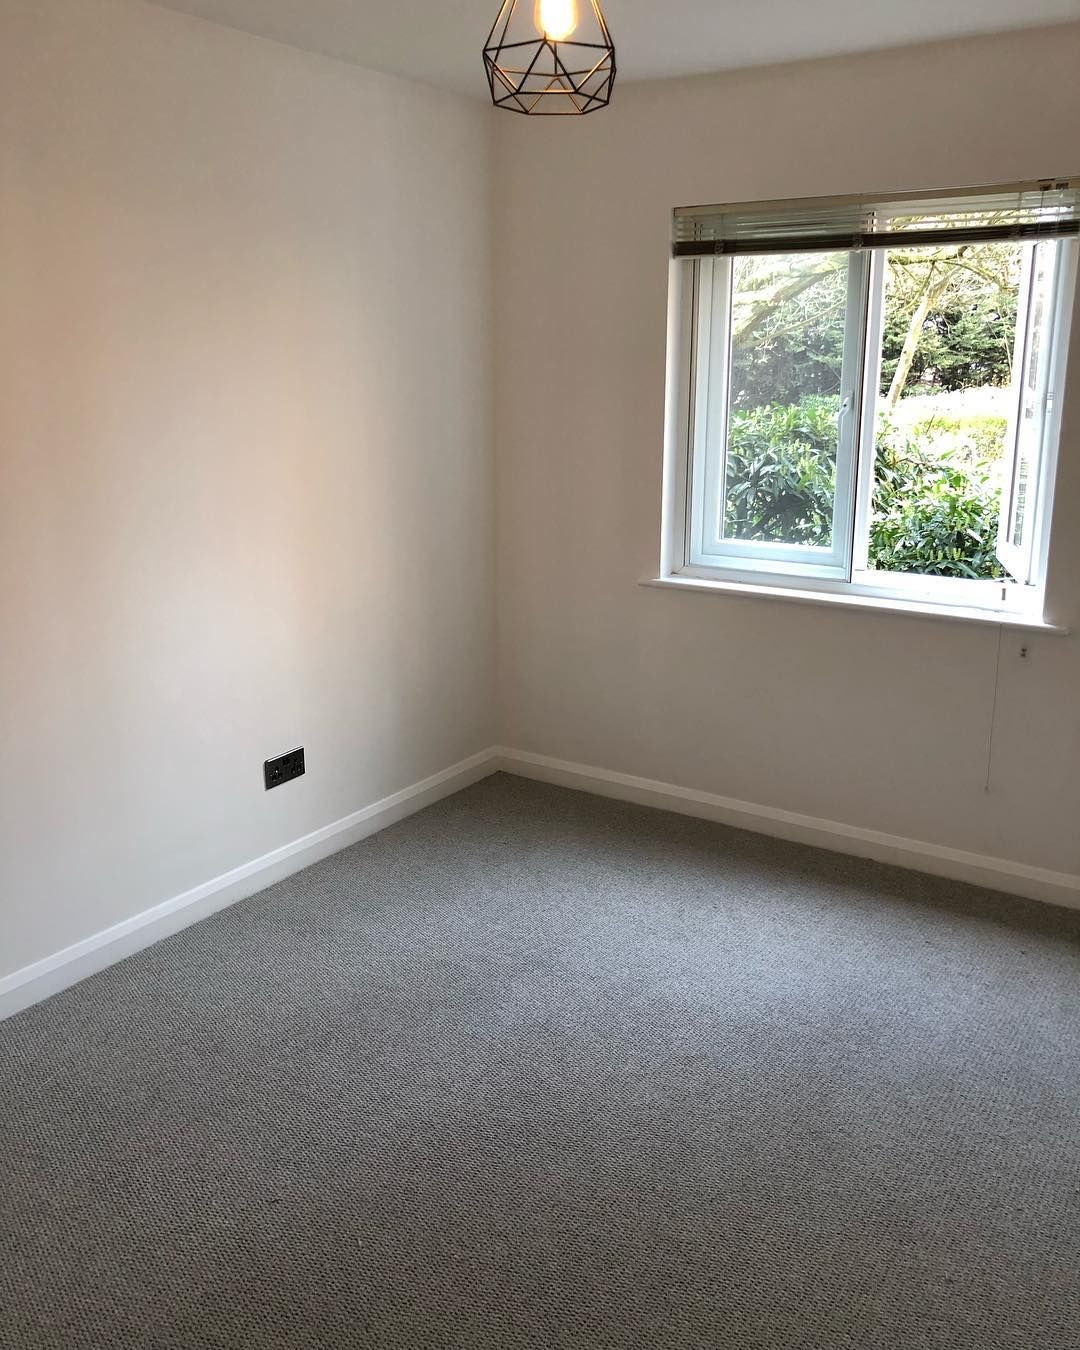 Watch The Best Youtube Videos Online Here We Have This Grey Wool Loop Carpet Fitted In This Room Bedroom Finished Off Wi Carpet Fitting Interior Design Room